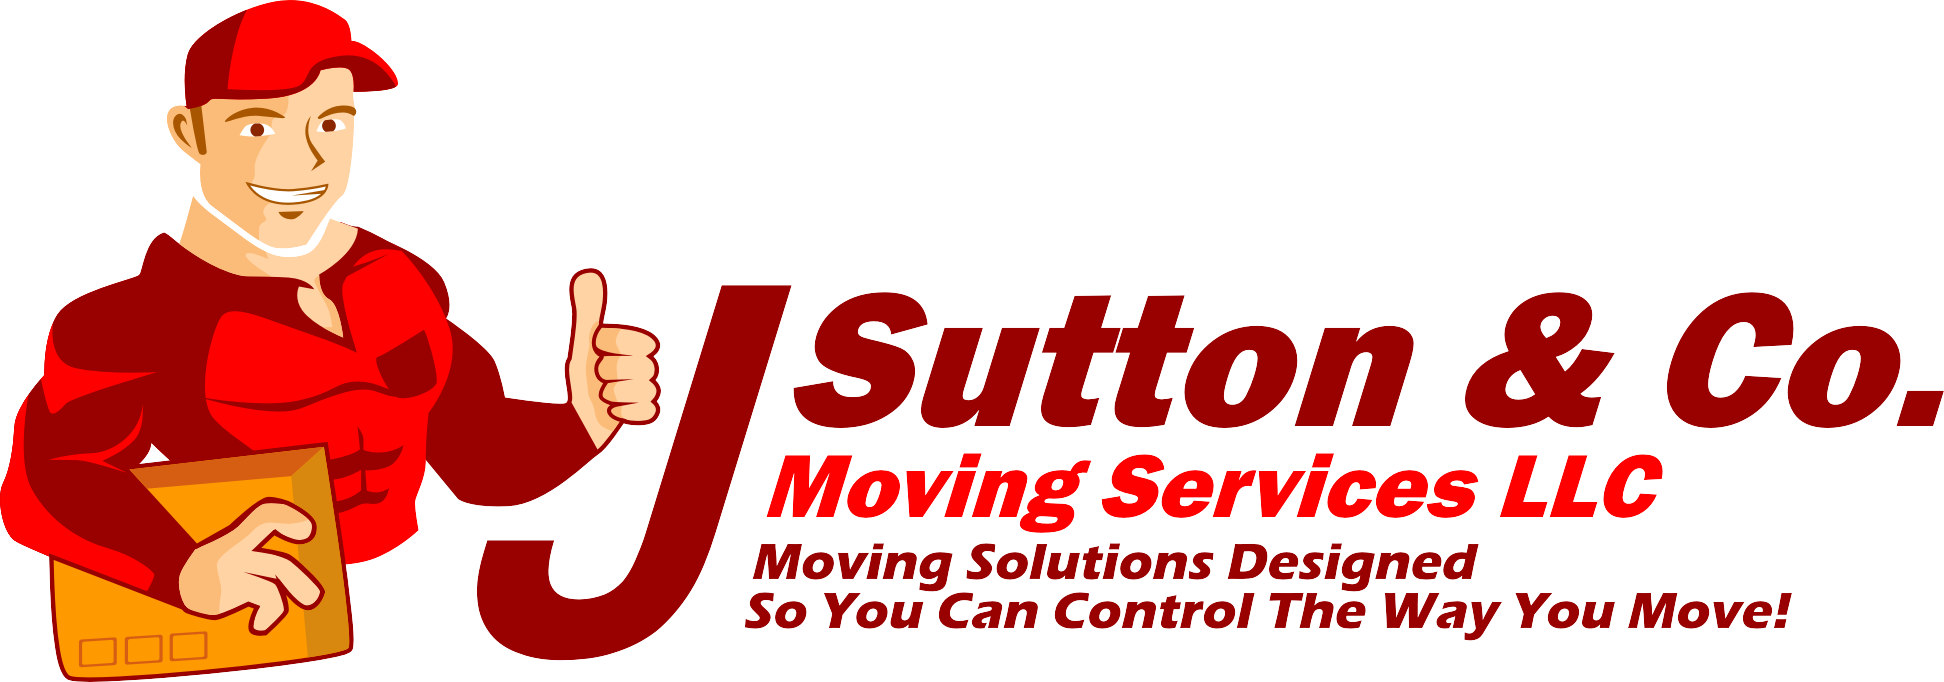 J Sutton and Co Moving Services LLC